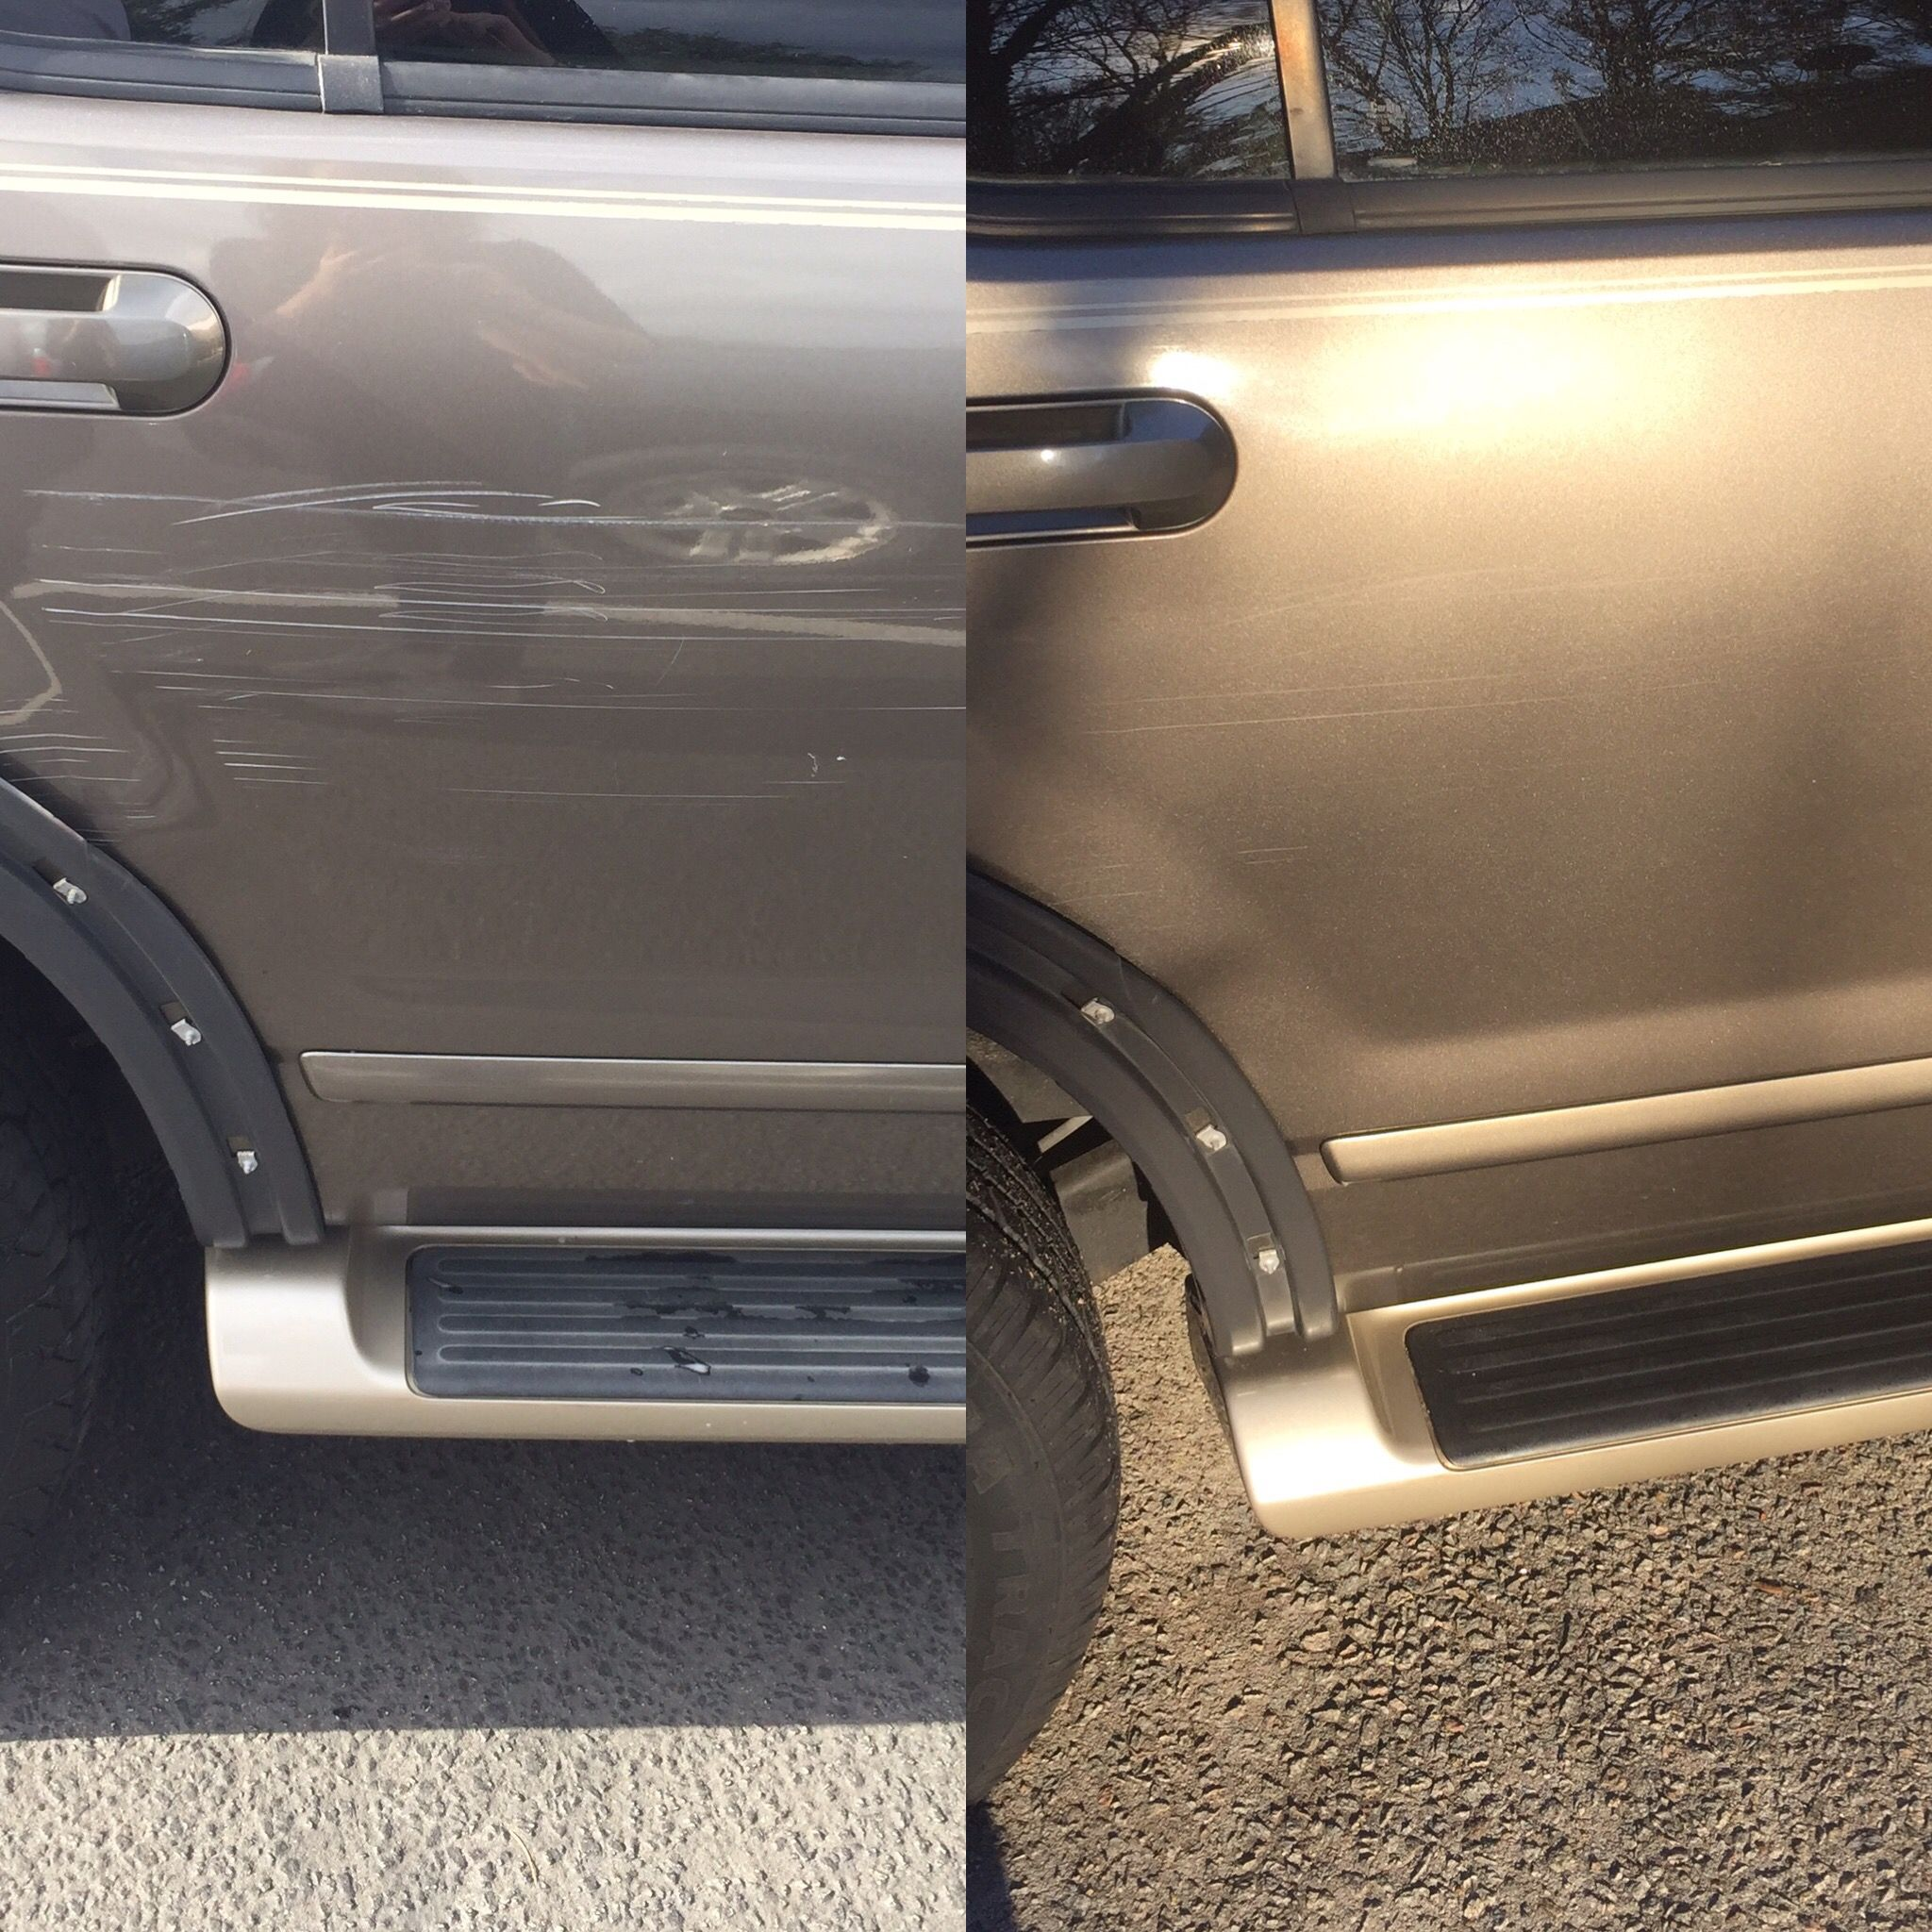 How to fix minor scratches on car